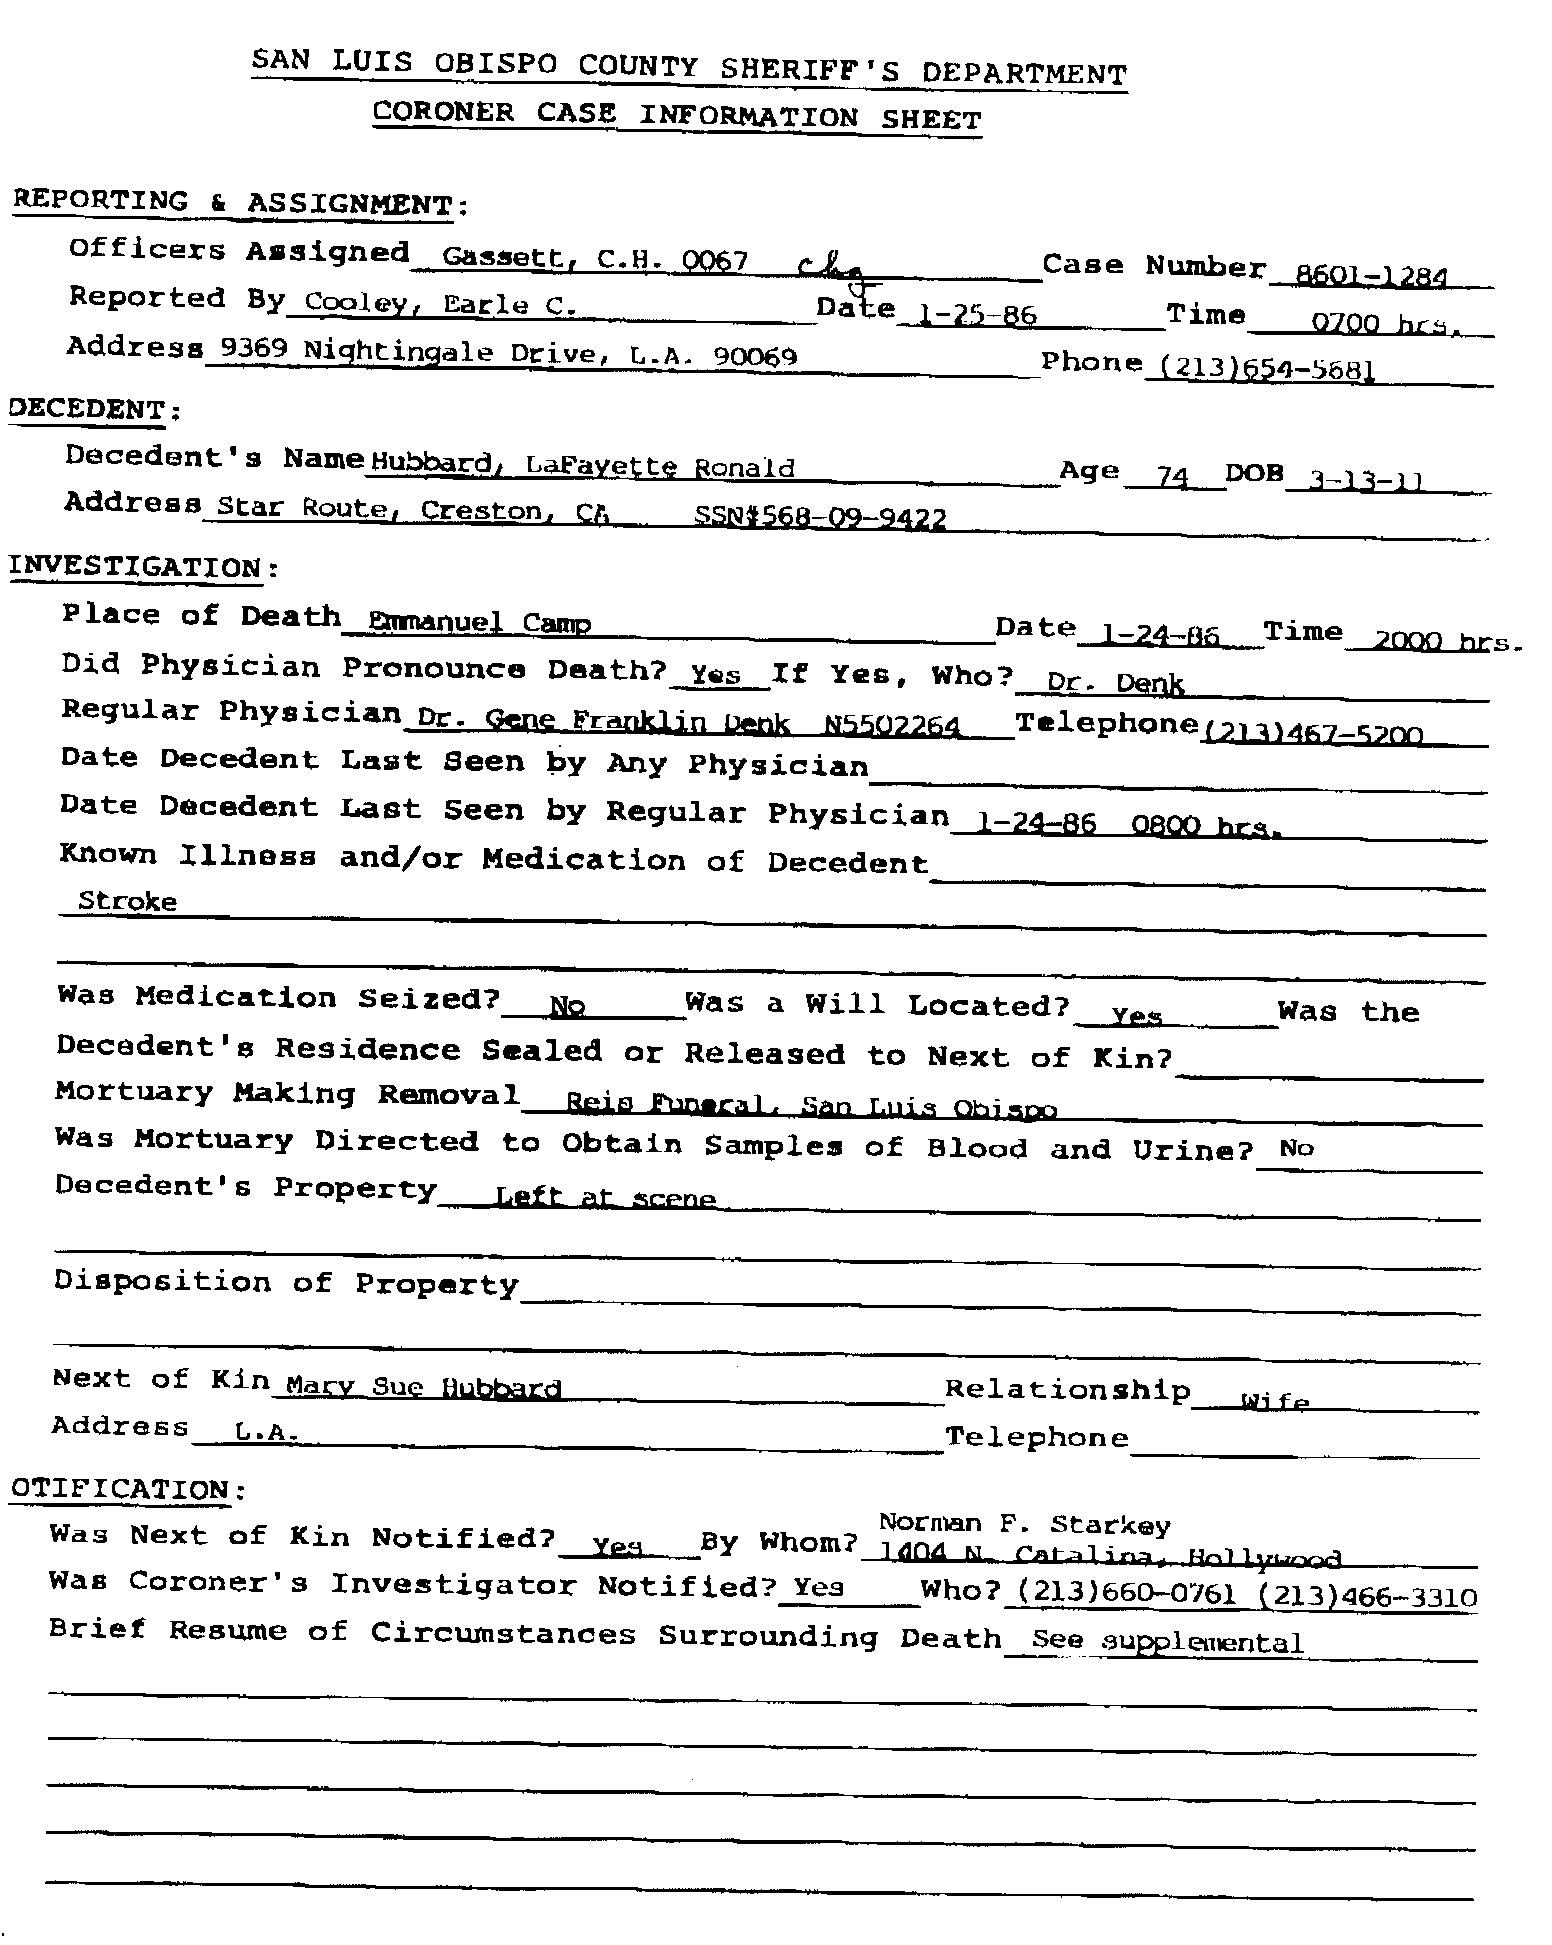 Autopsy Report Template - Calep.midnightpig.co Throughout Autopsy Report Template